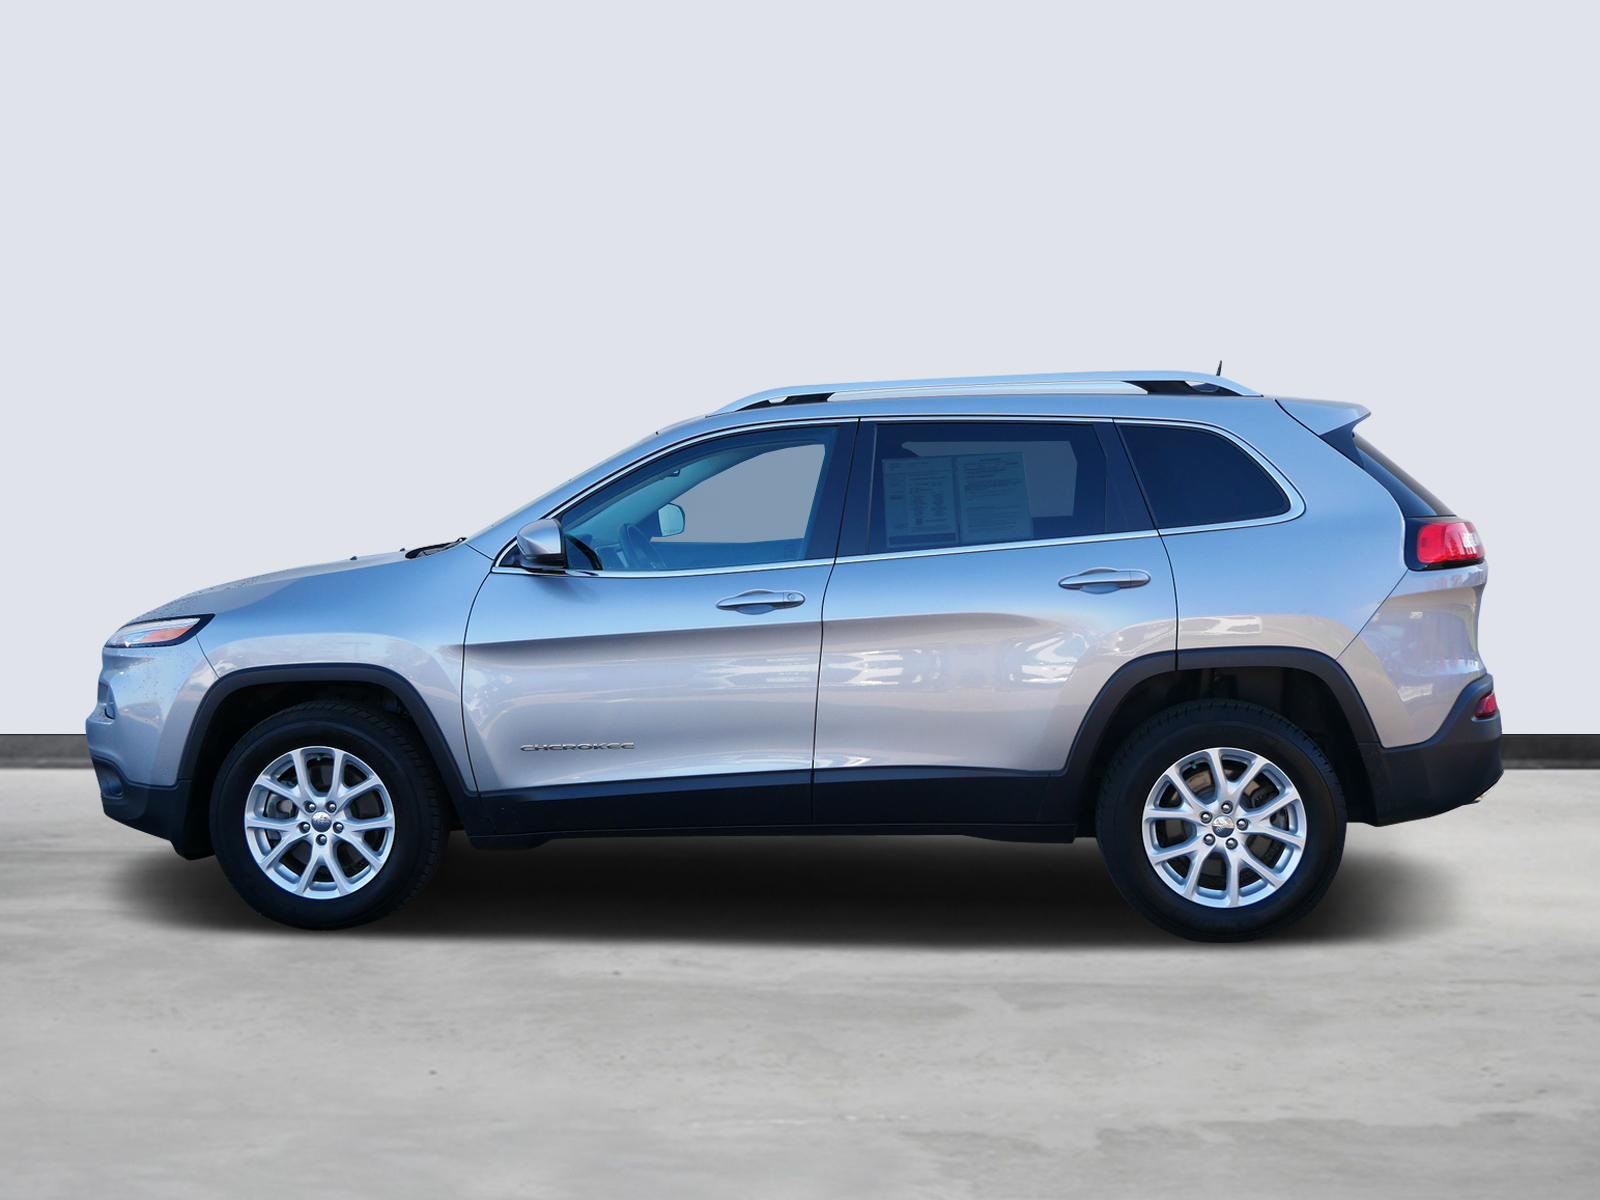 Used 2016 Jeep Cherokee Latitude with VIN 1C4PJMCS2GW366808 for sale in Maplewood, Minnesota